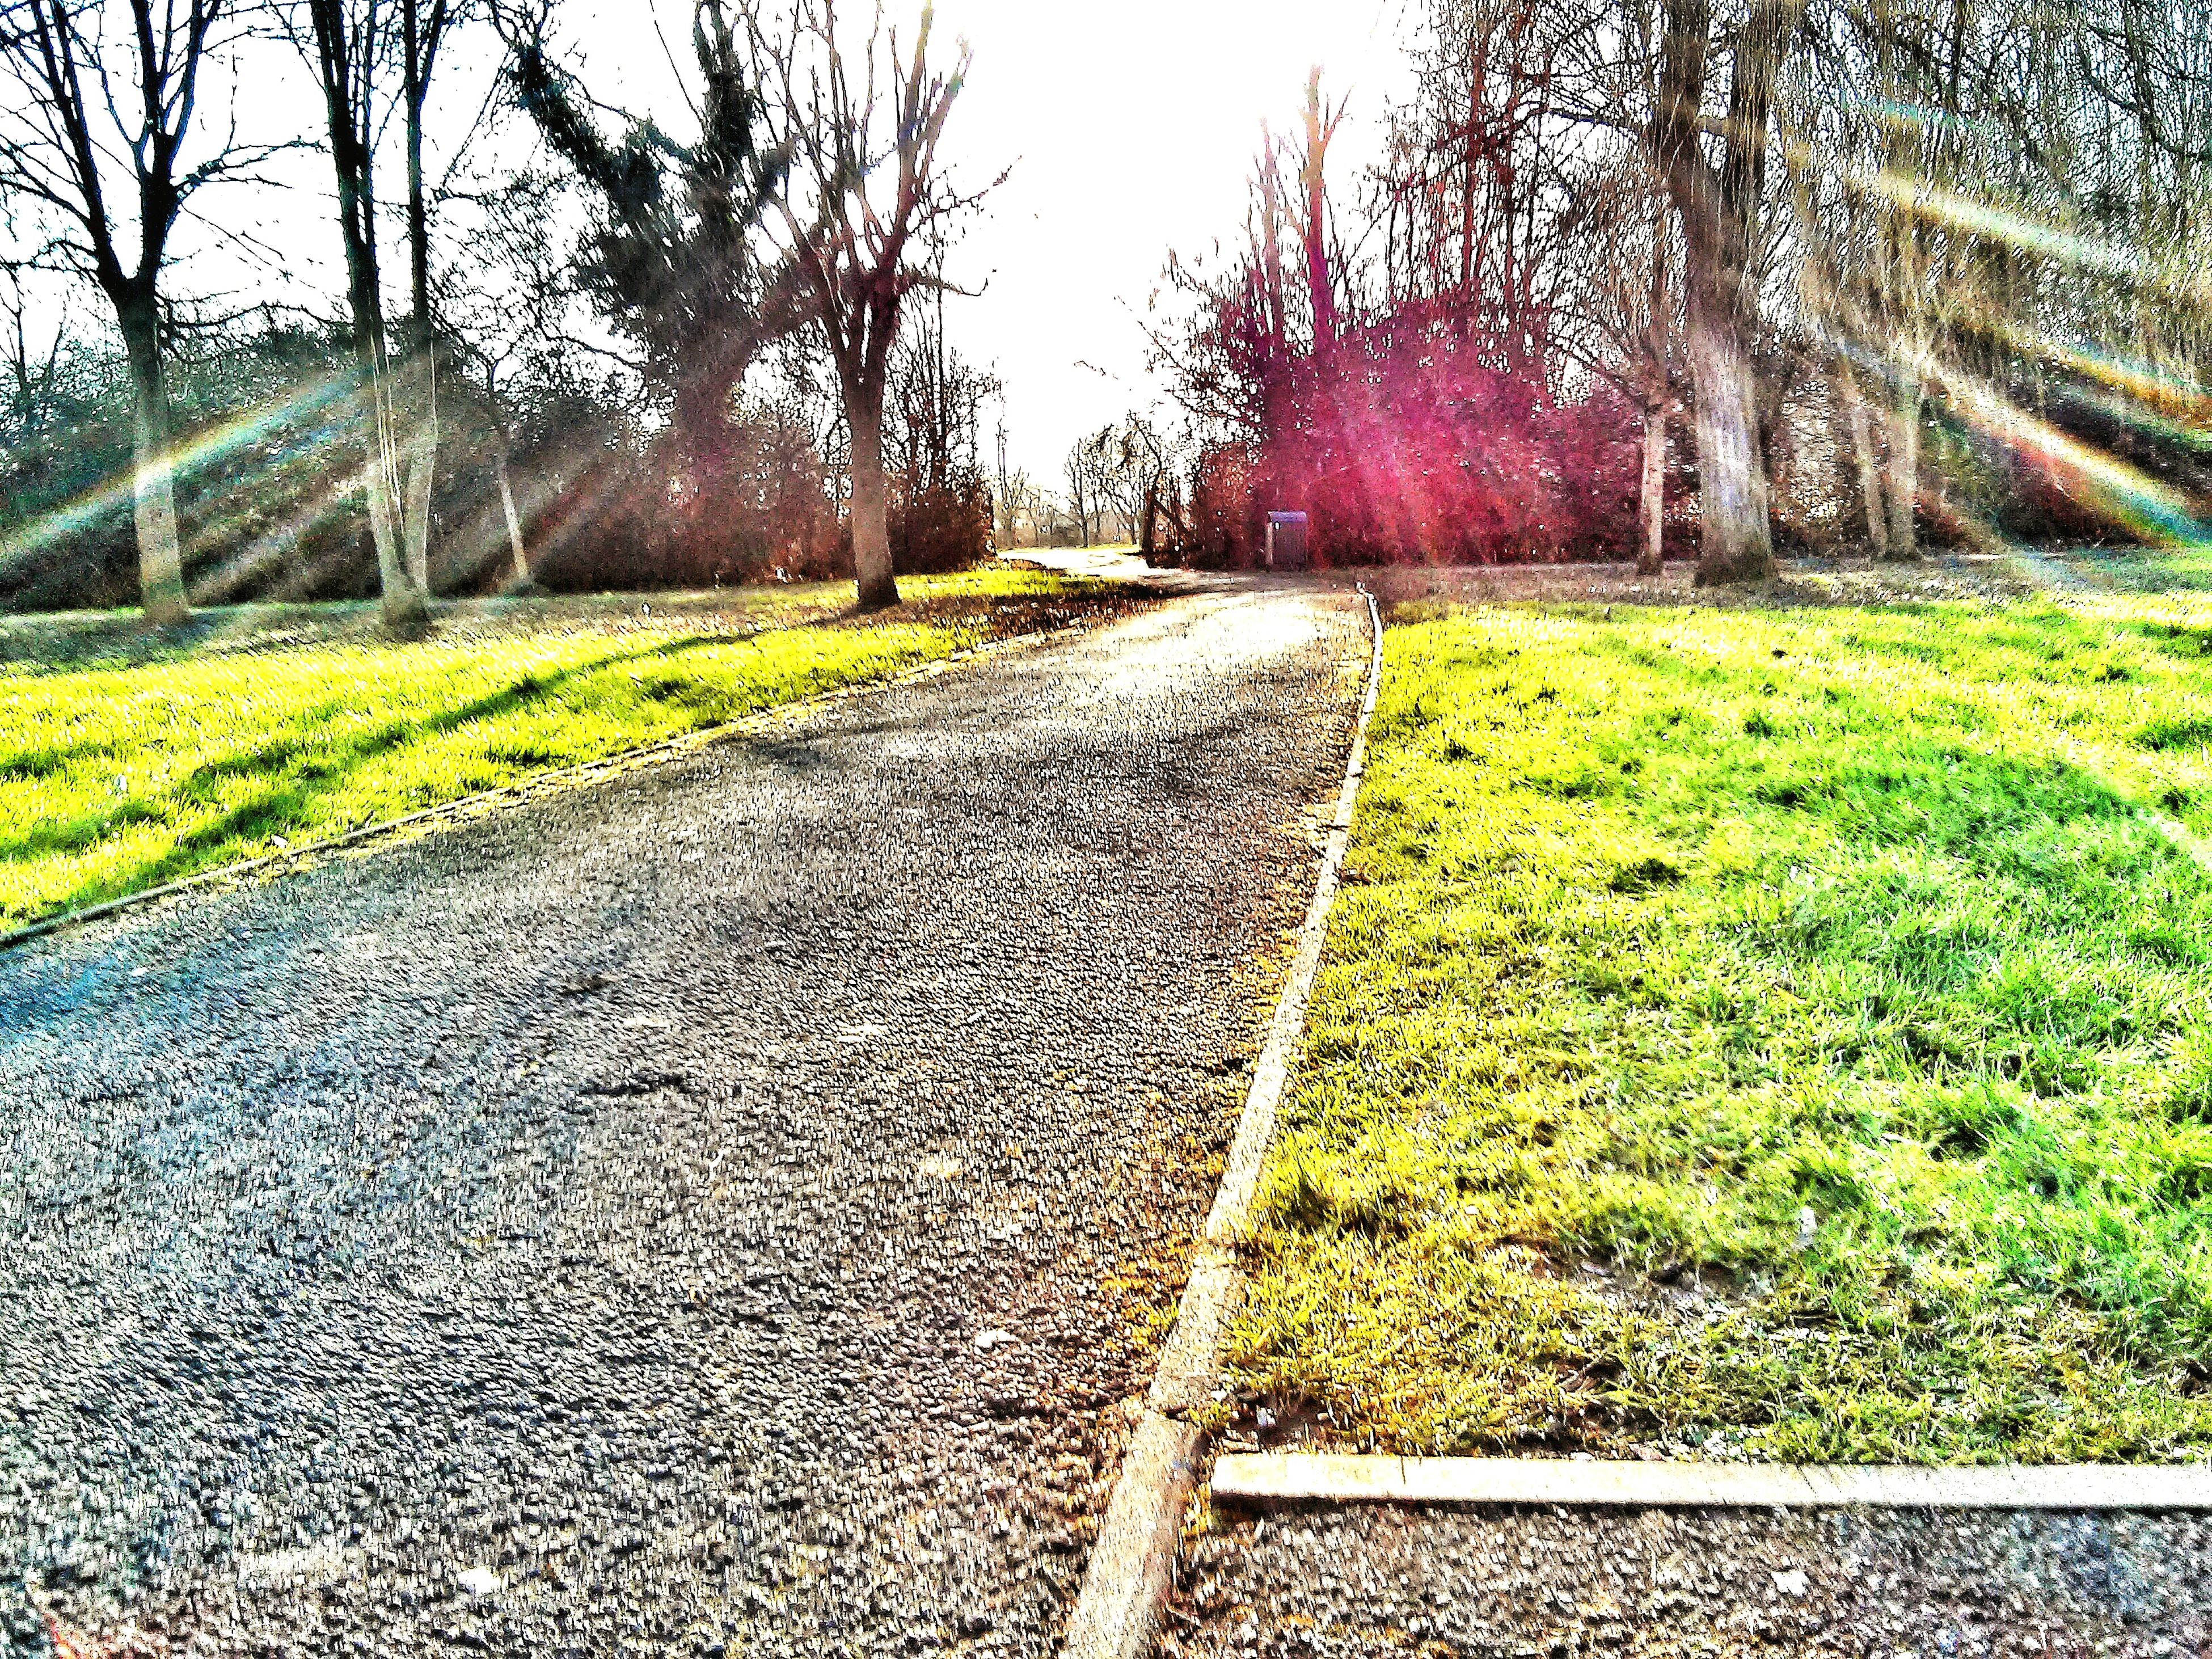 the way forward, diminishing perspective, vanishing point, tree, built structure, transportation, grass, sunlight, architecture, building exterior, day, growth, outdoors, nature, footpath, surface level, no people, plant, walkway, pathway